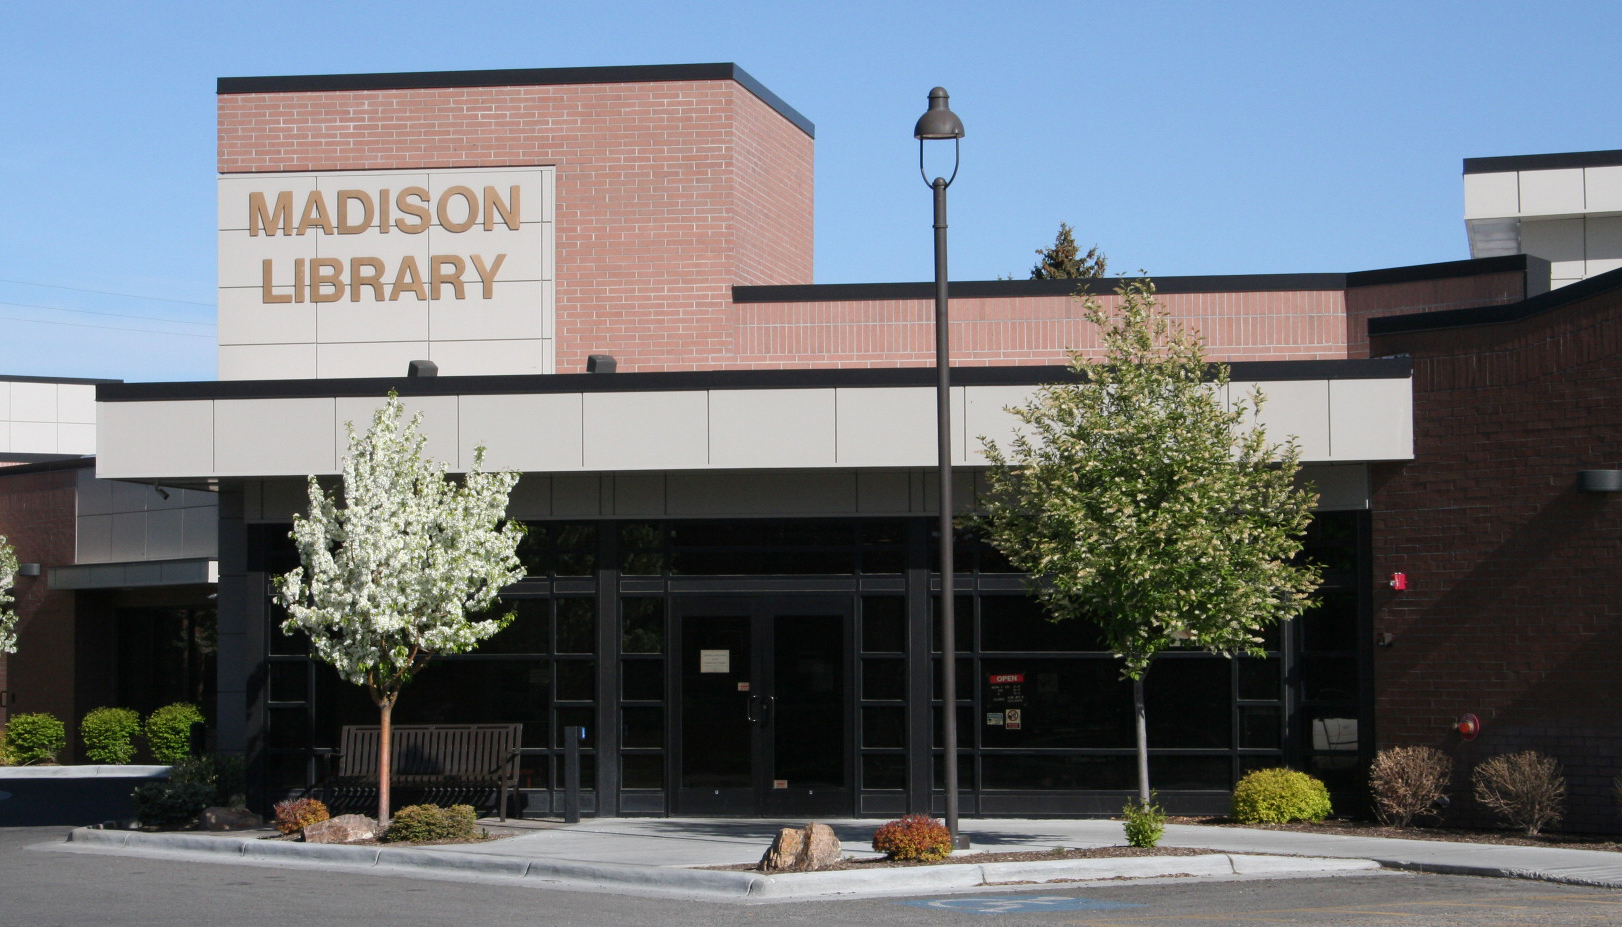 The Madison Library District Building